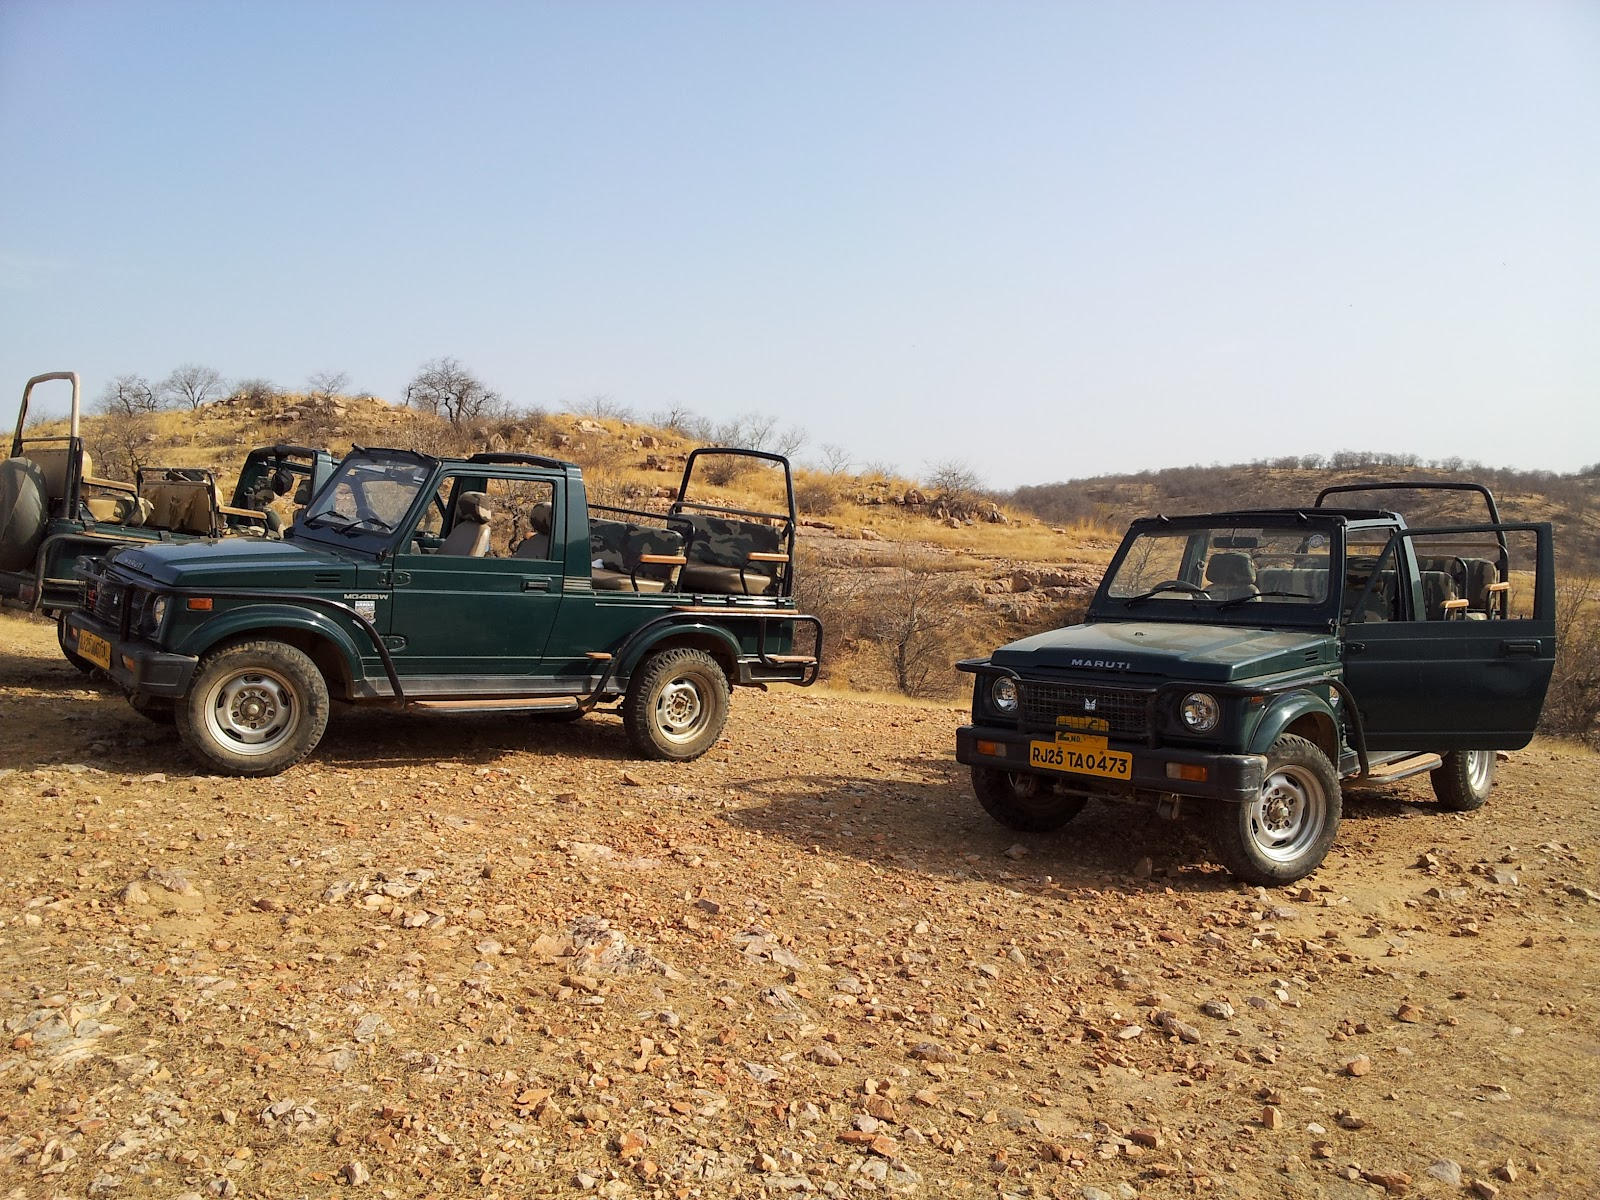 MARUTI Gypsy car technical data  Car specifications  Vehicle